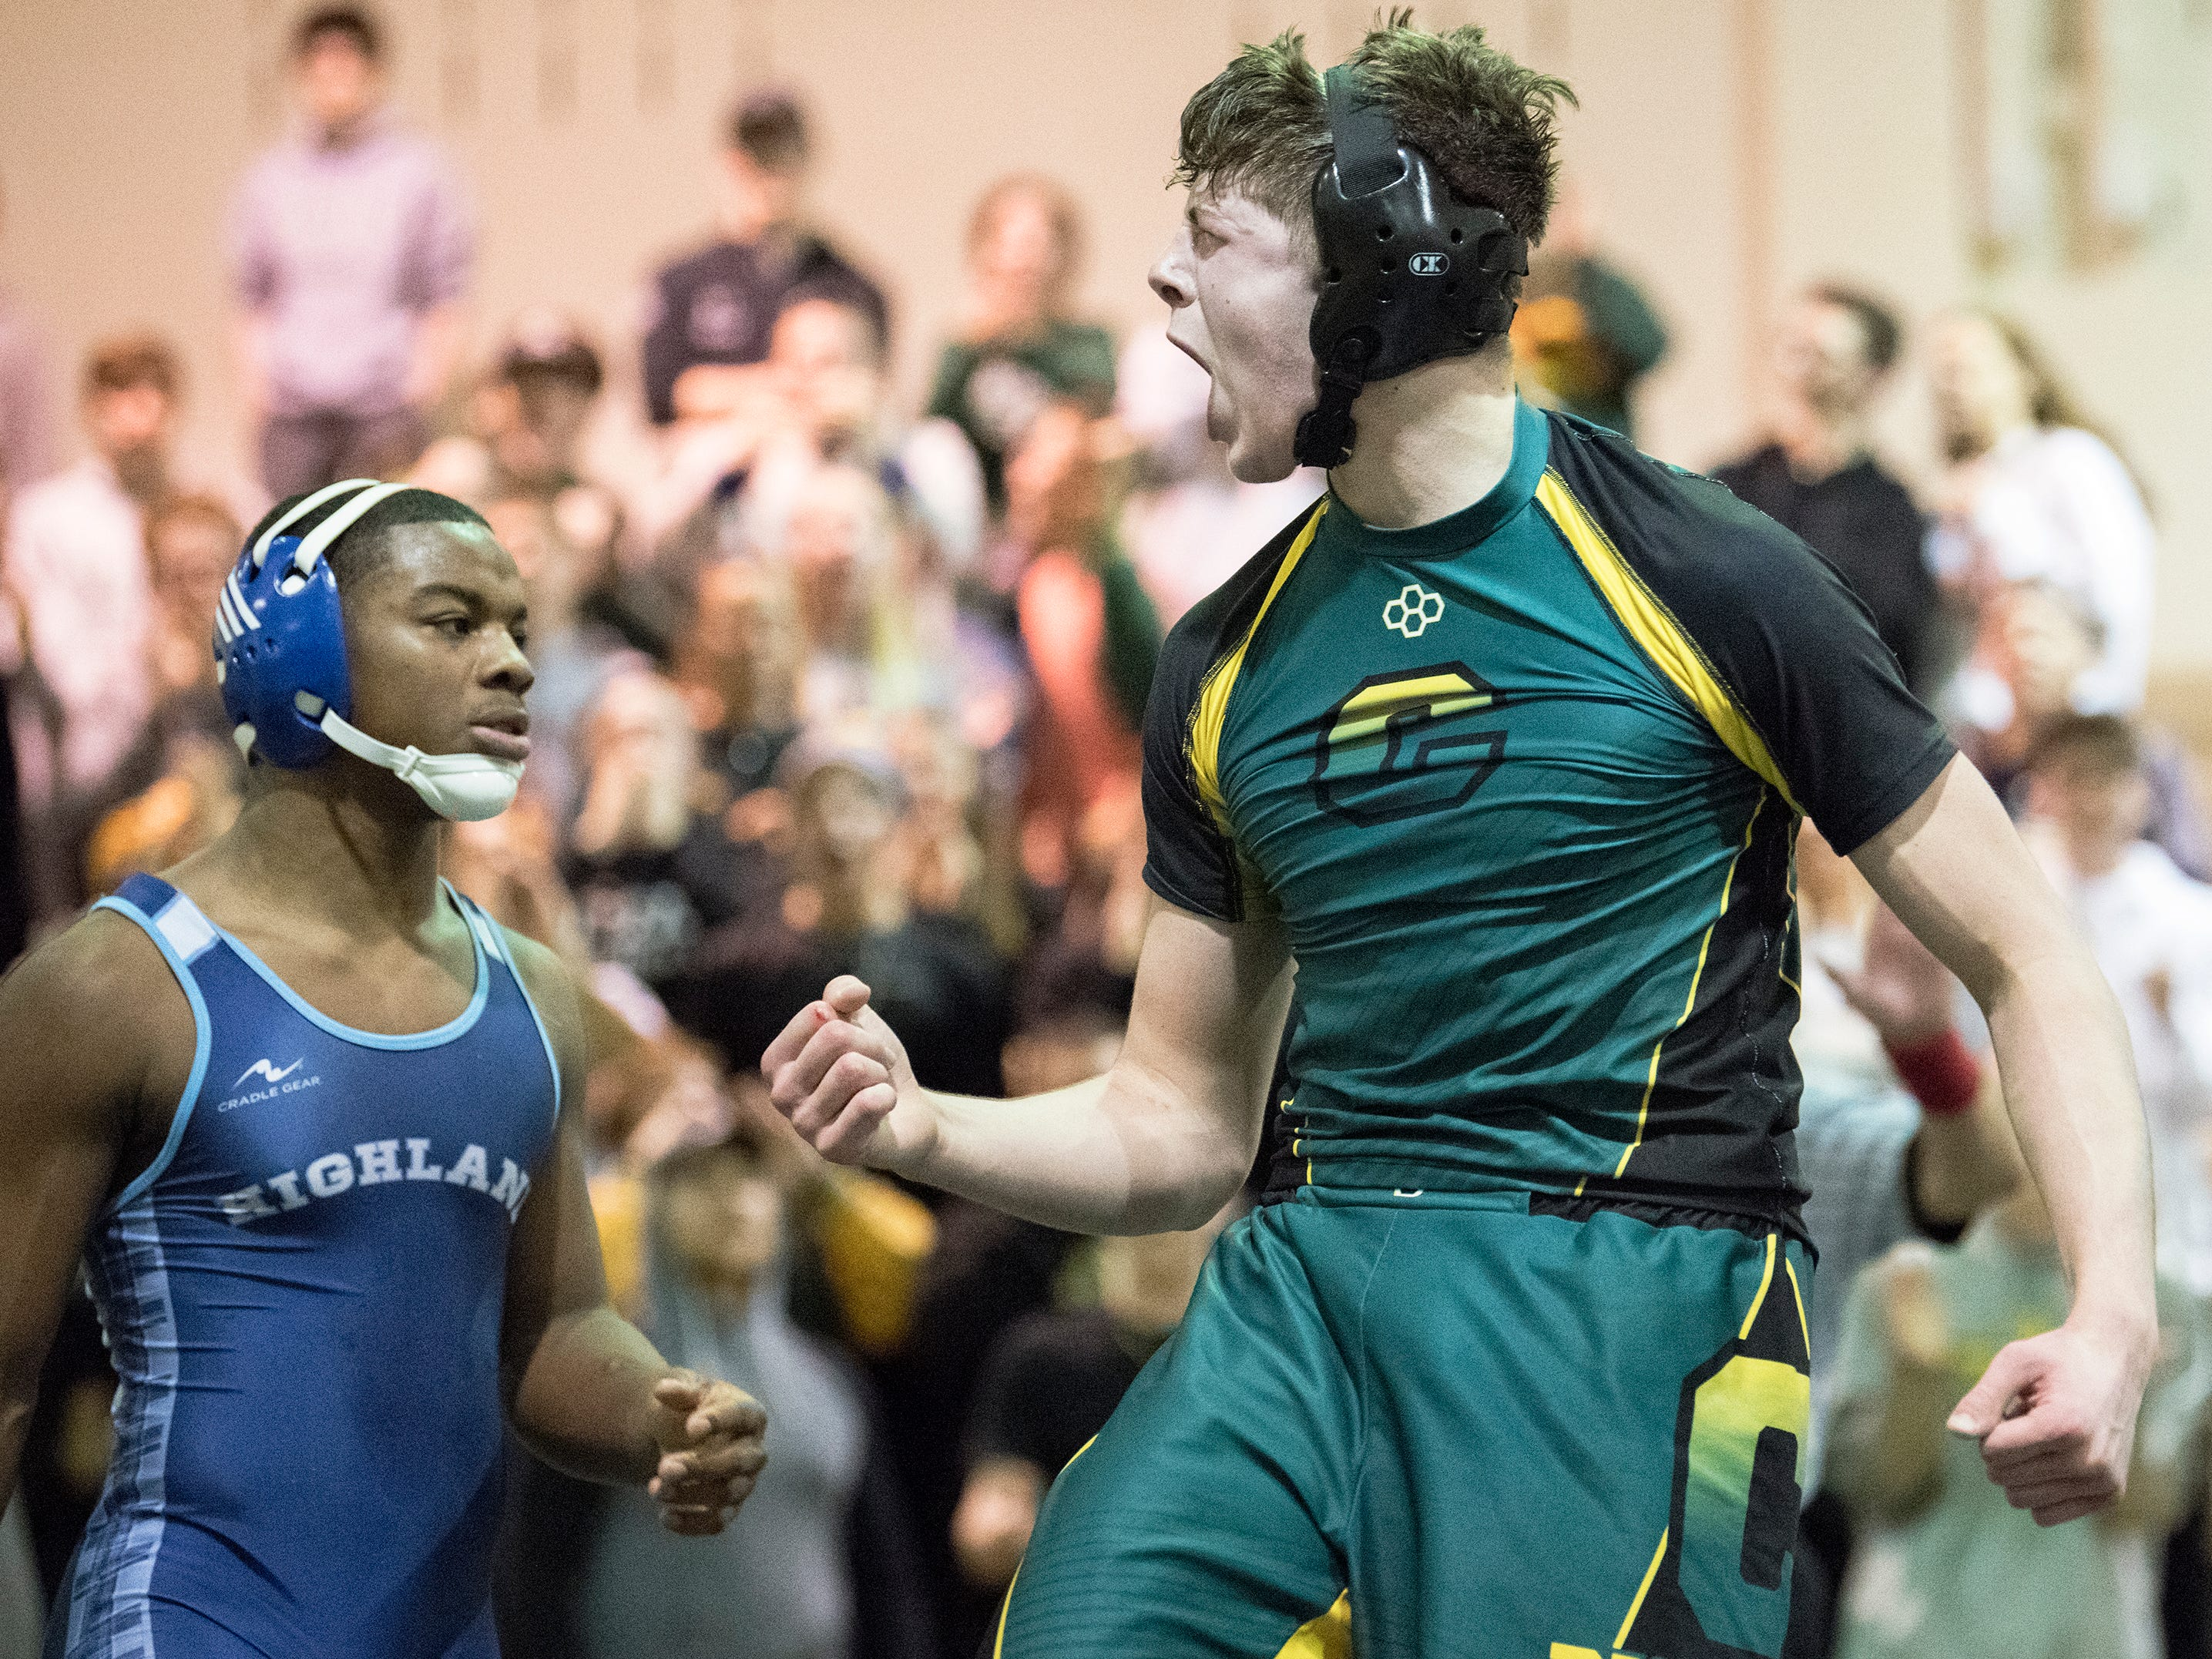 Clearview's Dylan Cydis celebrates after beating Highland's Izaiah Otero, 6-2, in the 182 lb. bout of the South Jersey Group 4 semifinal round wrestling match held at Clearview High School on Wednesday, February 6, 2019.   Clearview defeated Highland, 40-27.